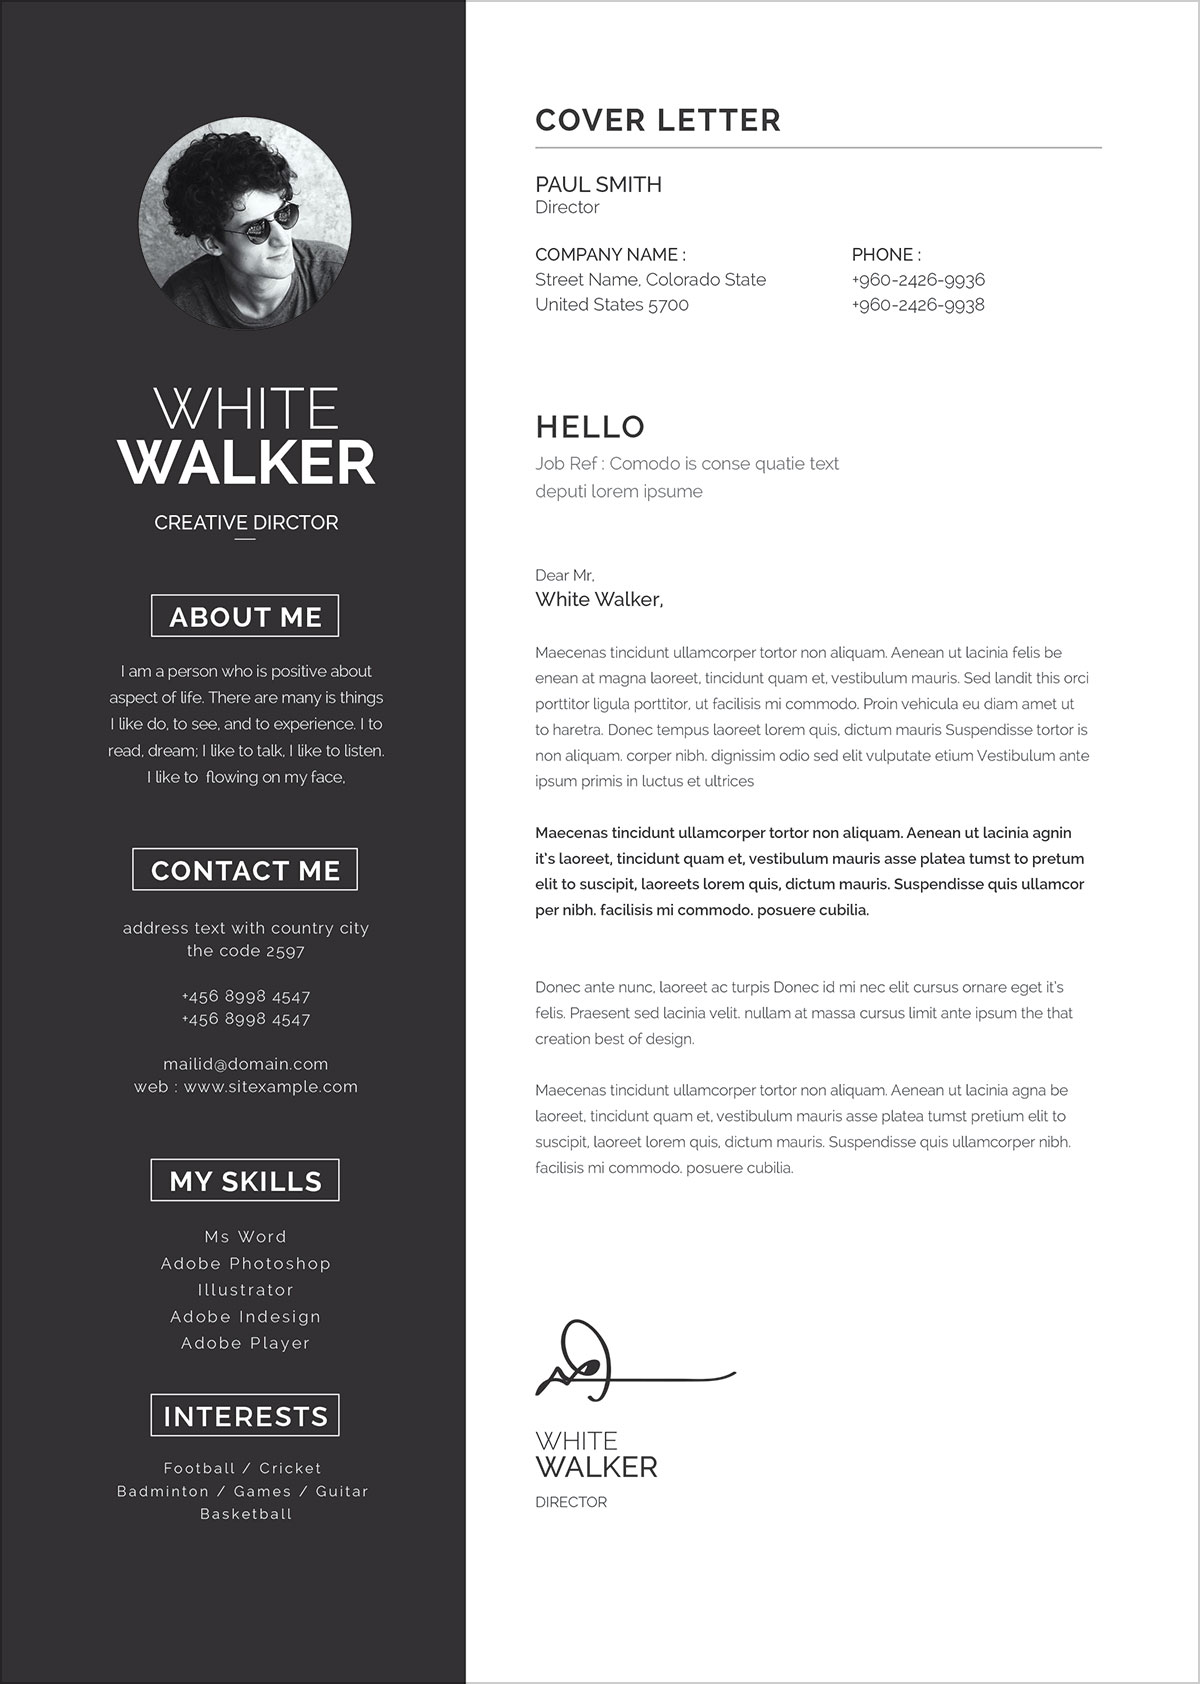 free clean resume template  u0026 cover letter in word  psd  pptx  u0026 eps